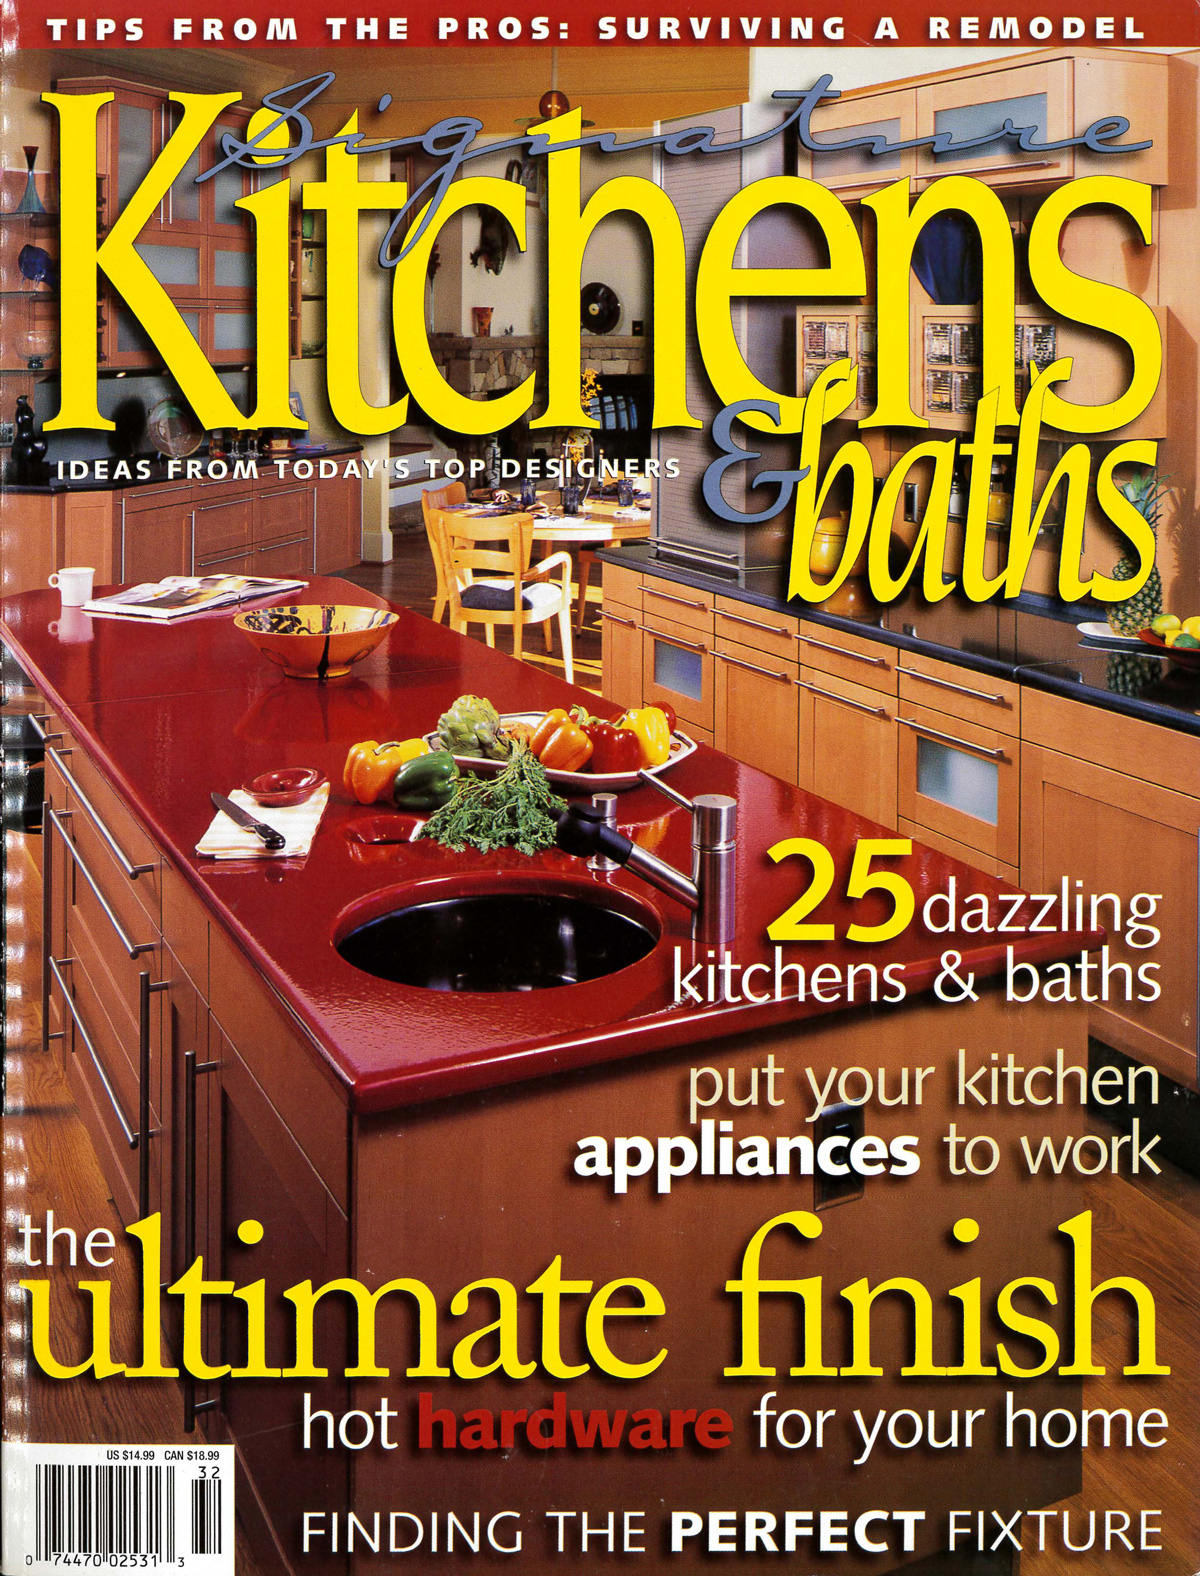 Signature Kitchen & Bath Ideas,Summer 2003